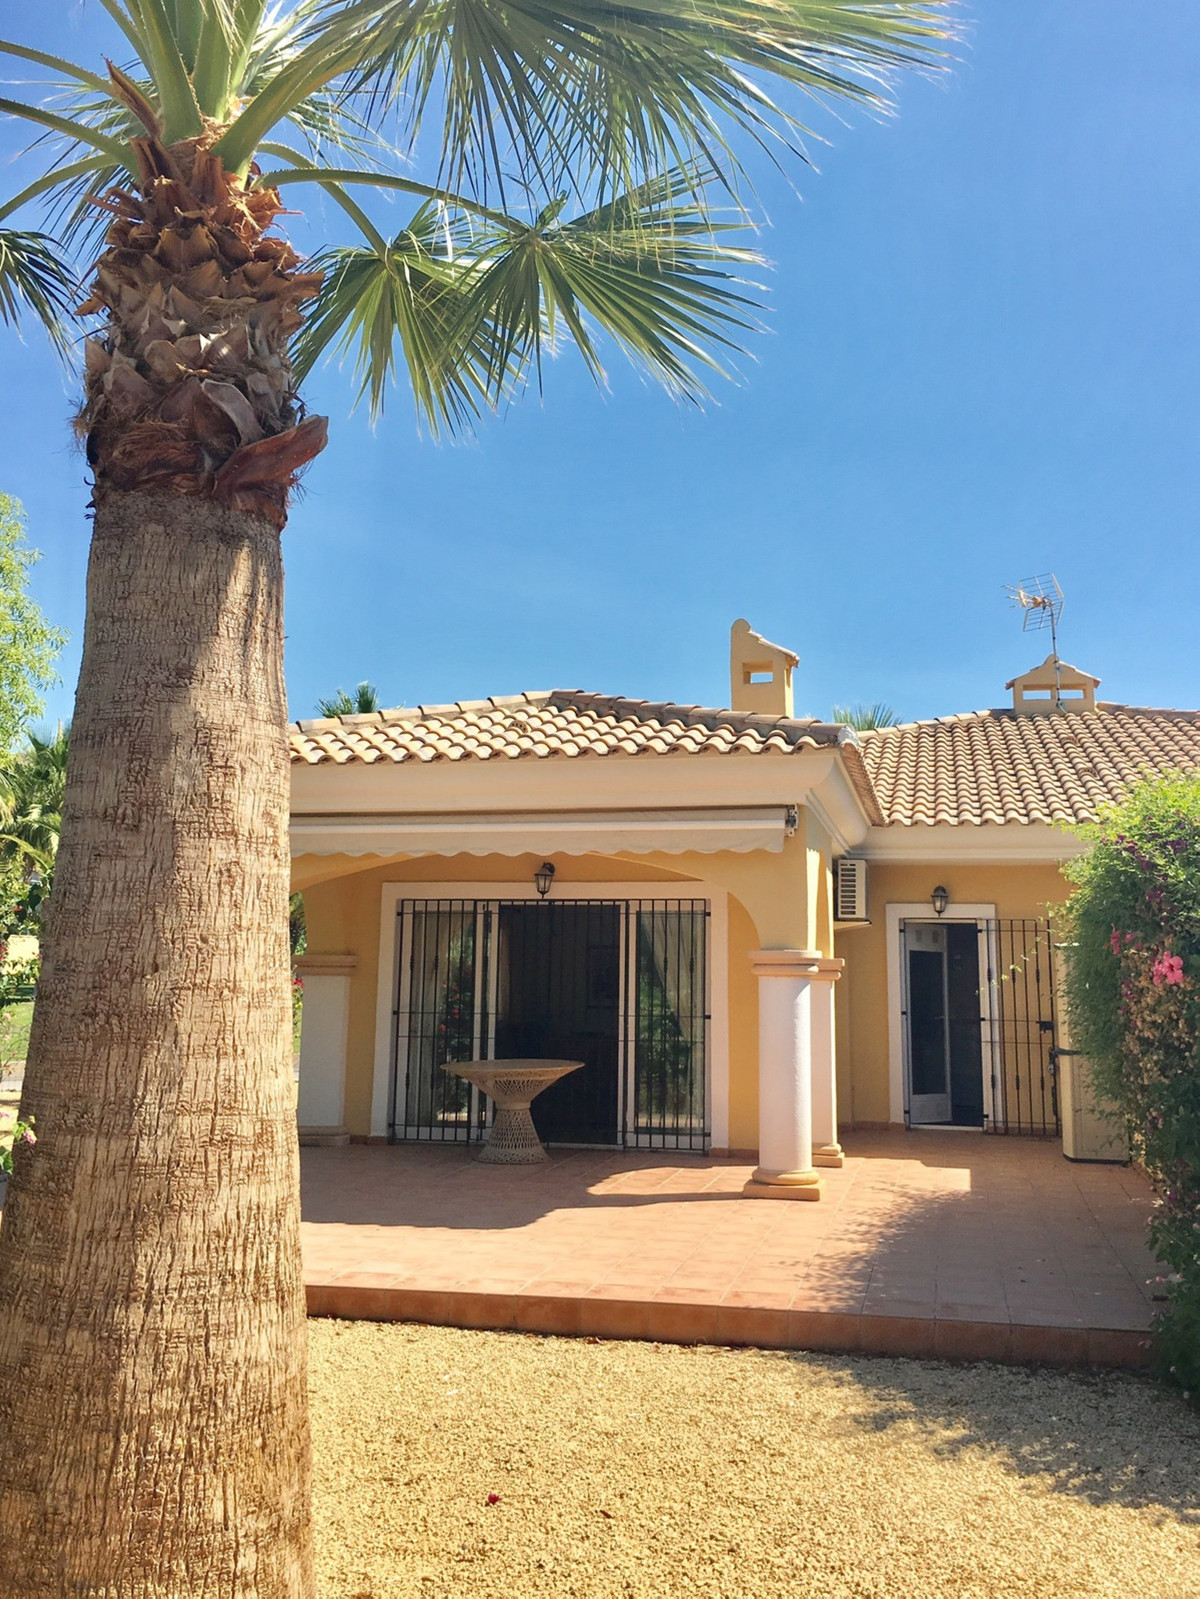 Charming, 3 bedroom, link-detached bungalow, located just 10 minutes to beaches and villages of Camp,Spain